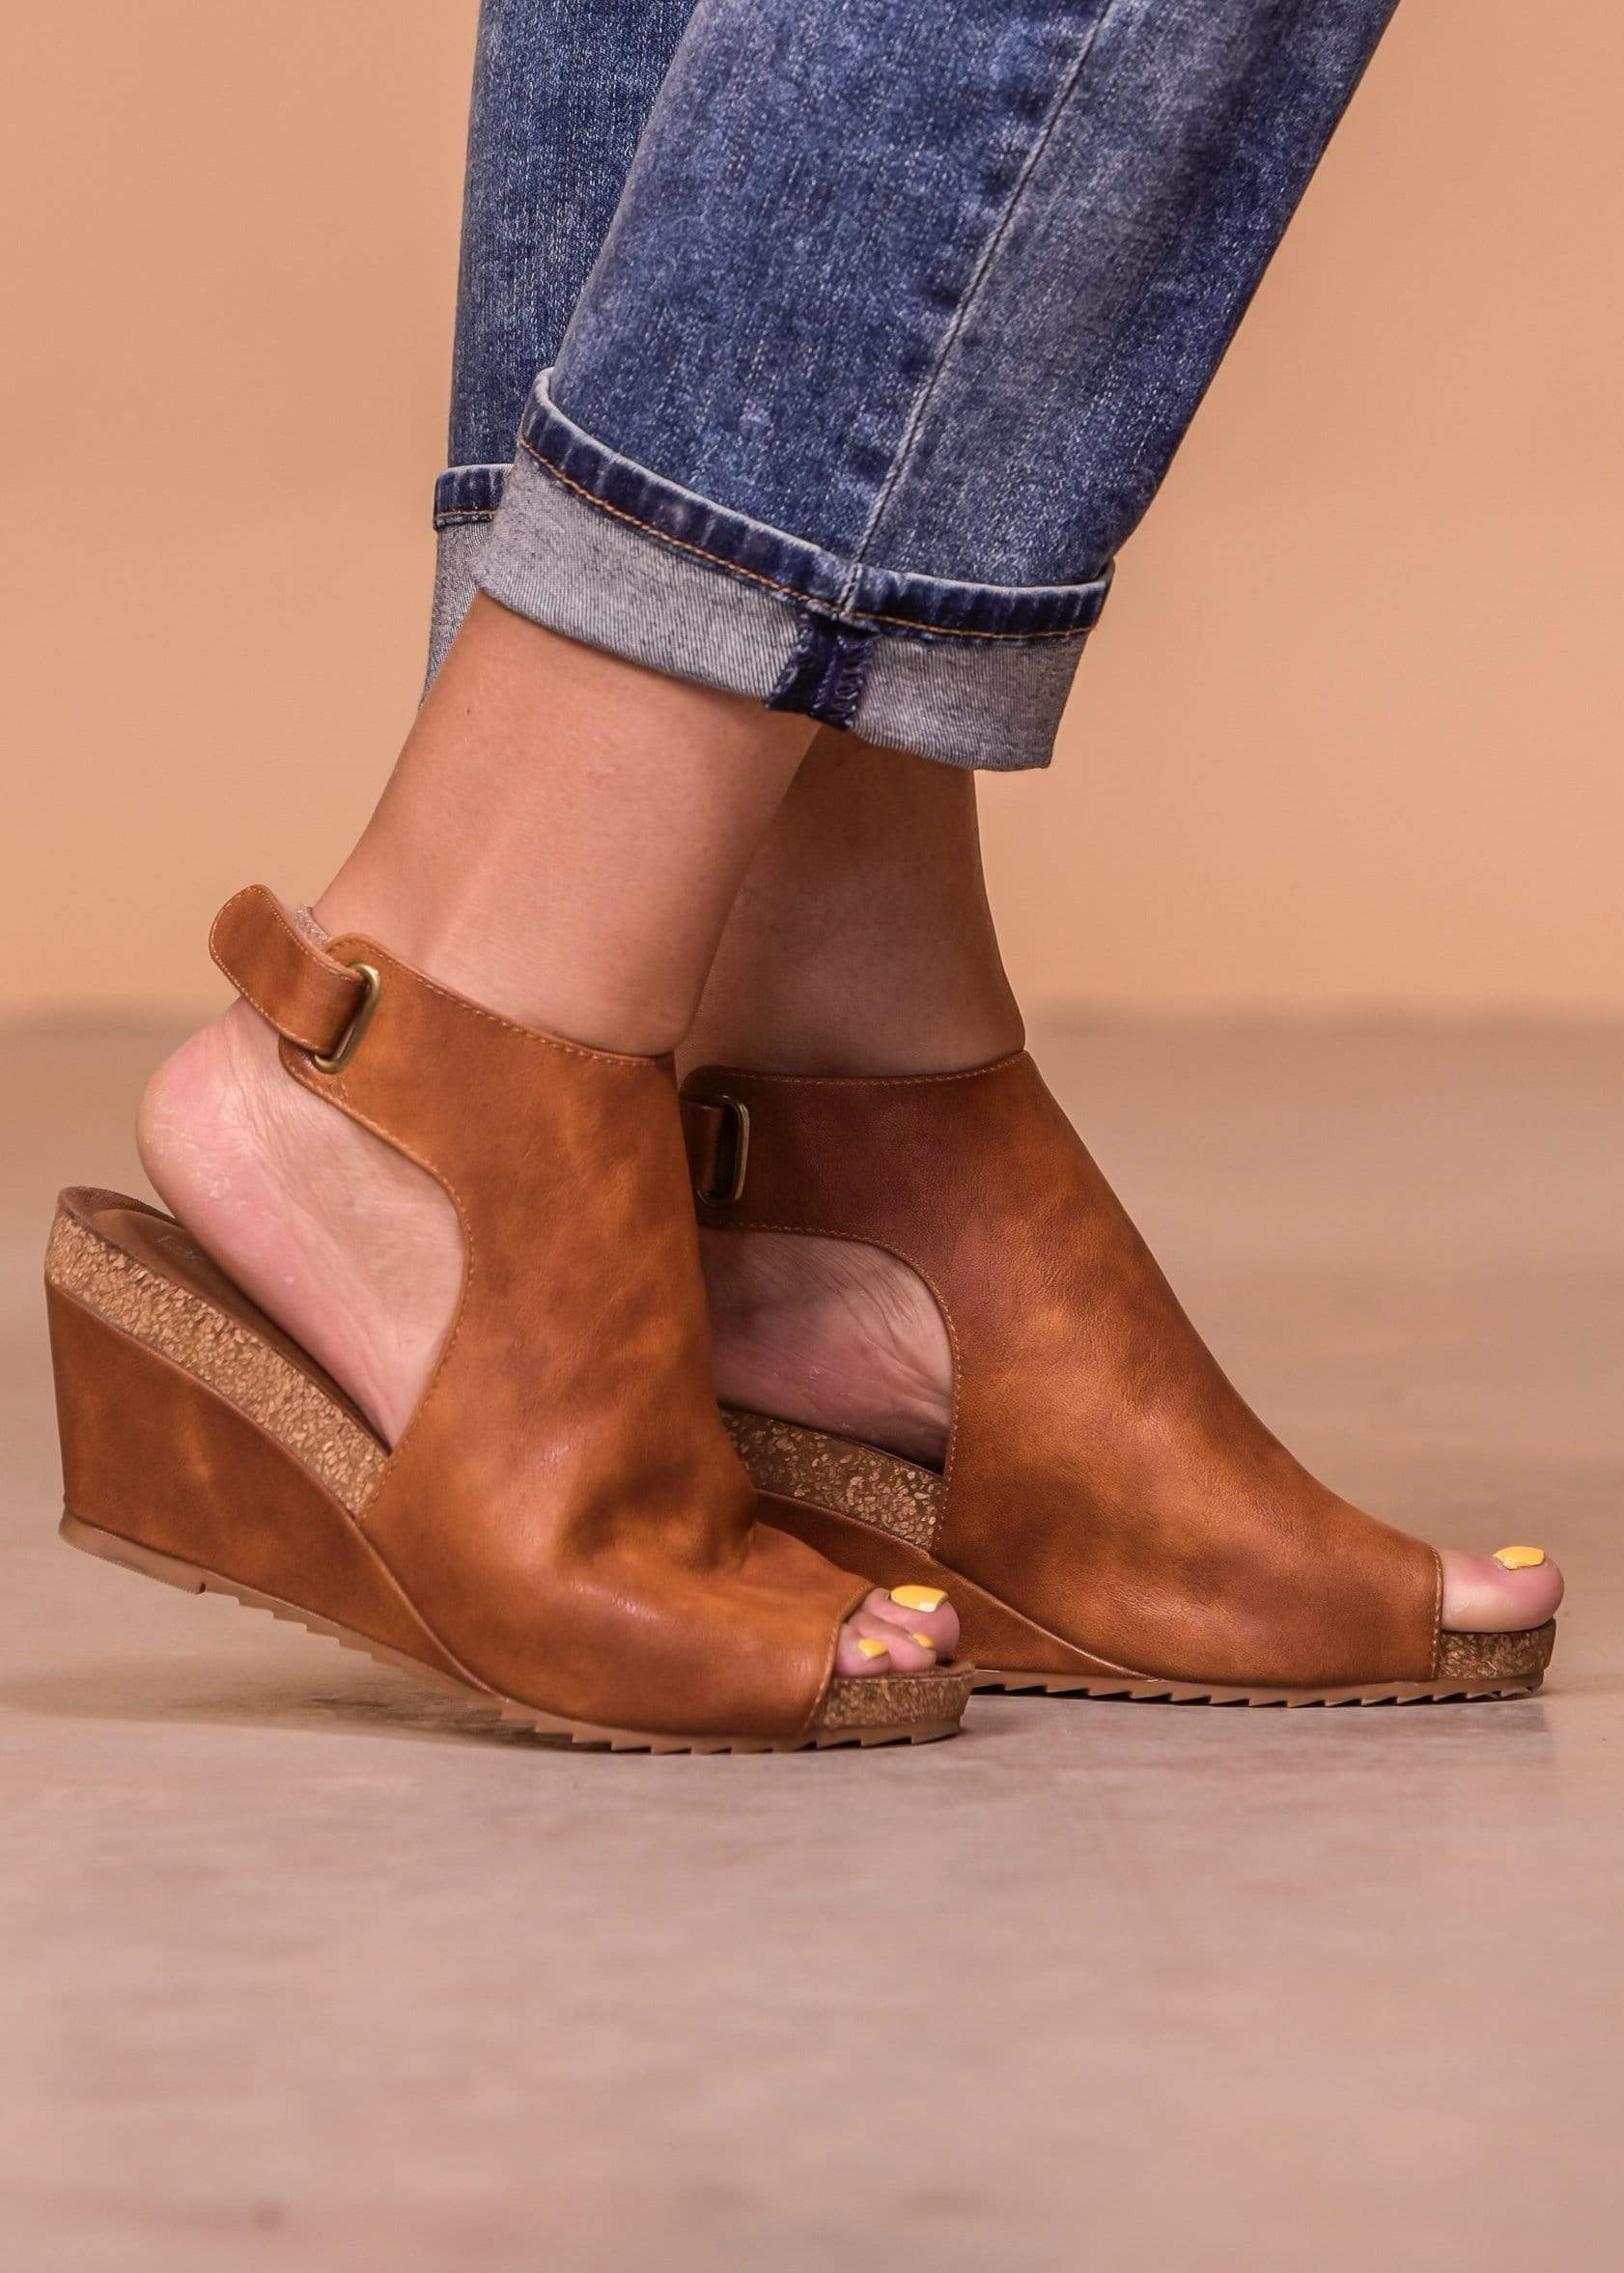 Peep Toe Sling Back Calypso Wedge - Cognac